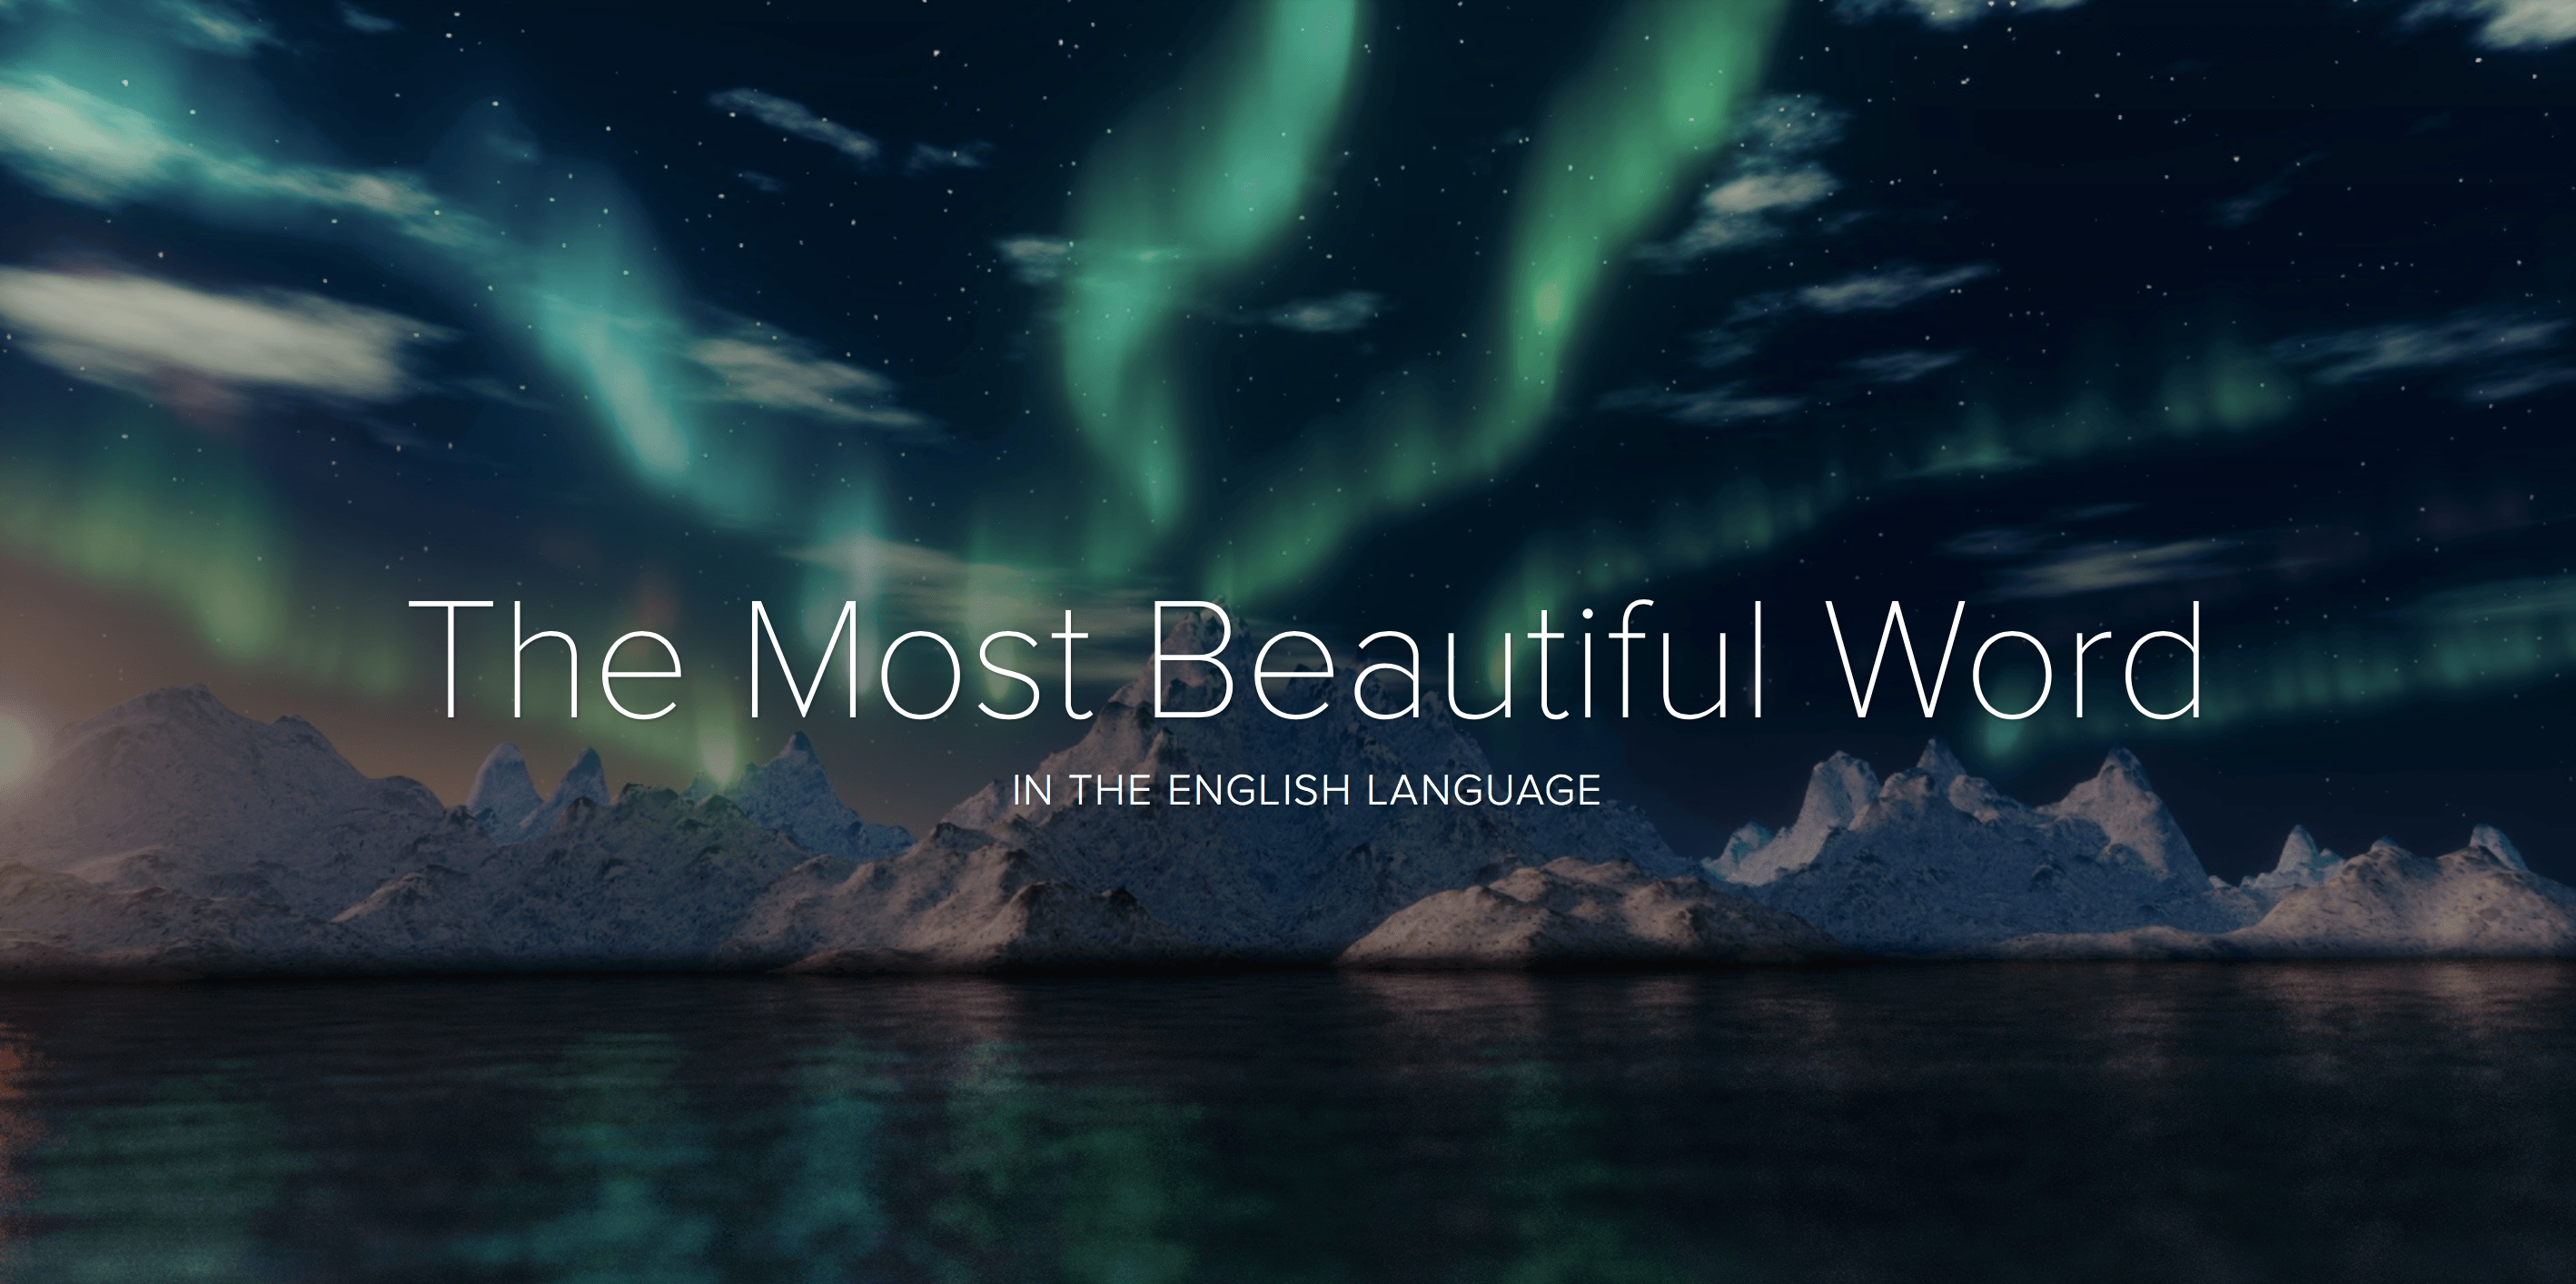 Which word surpasses all others in beauty?